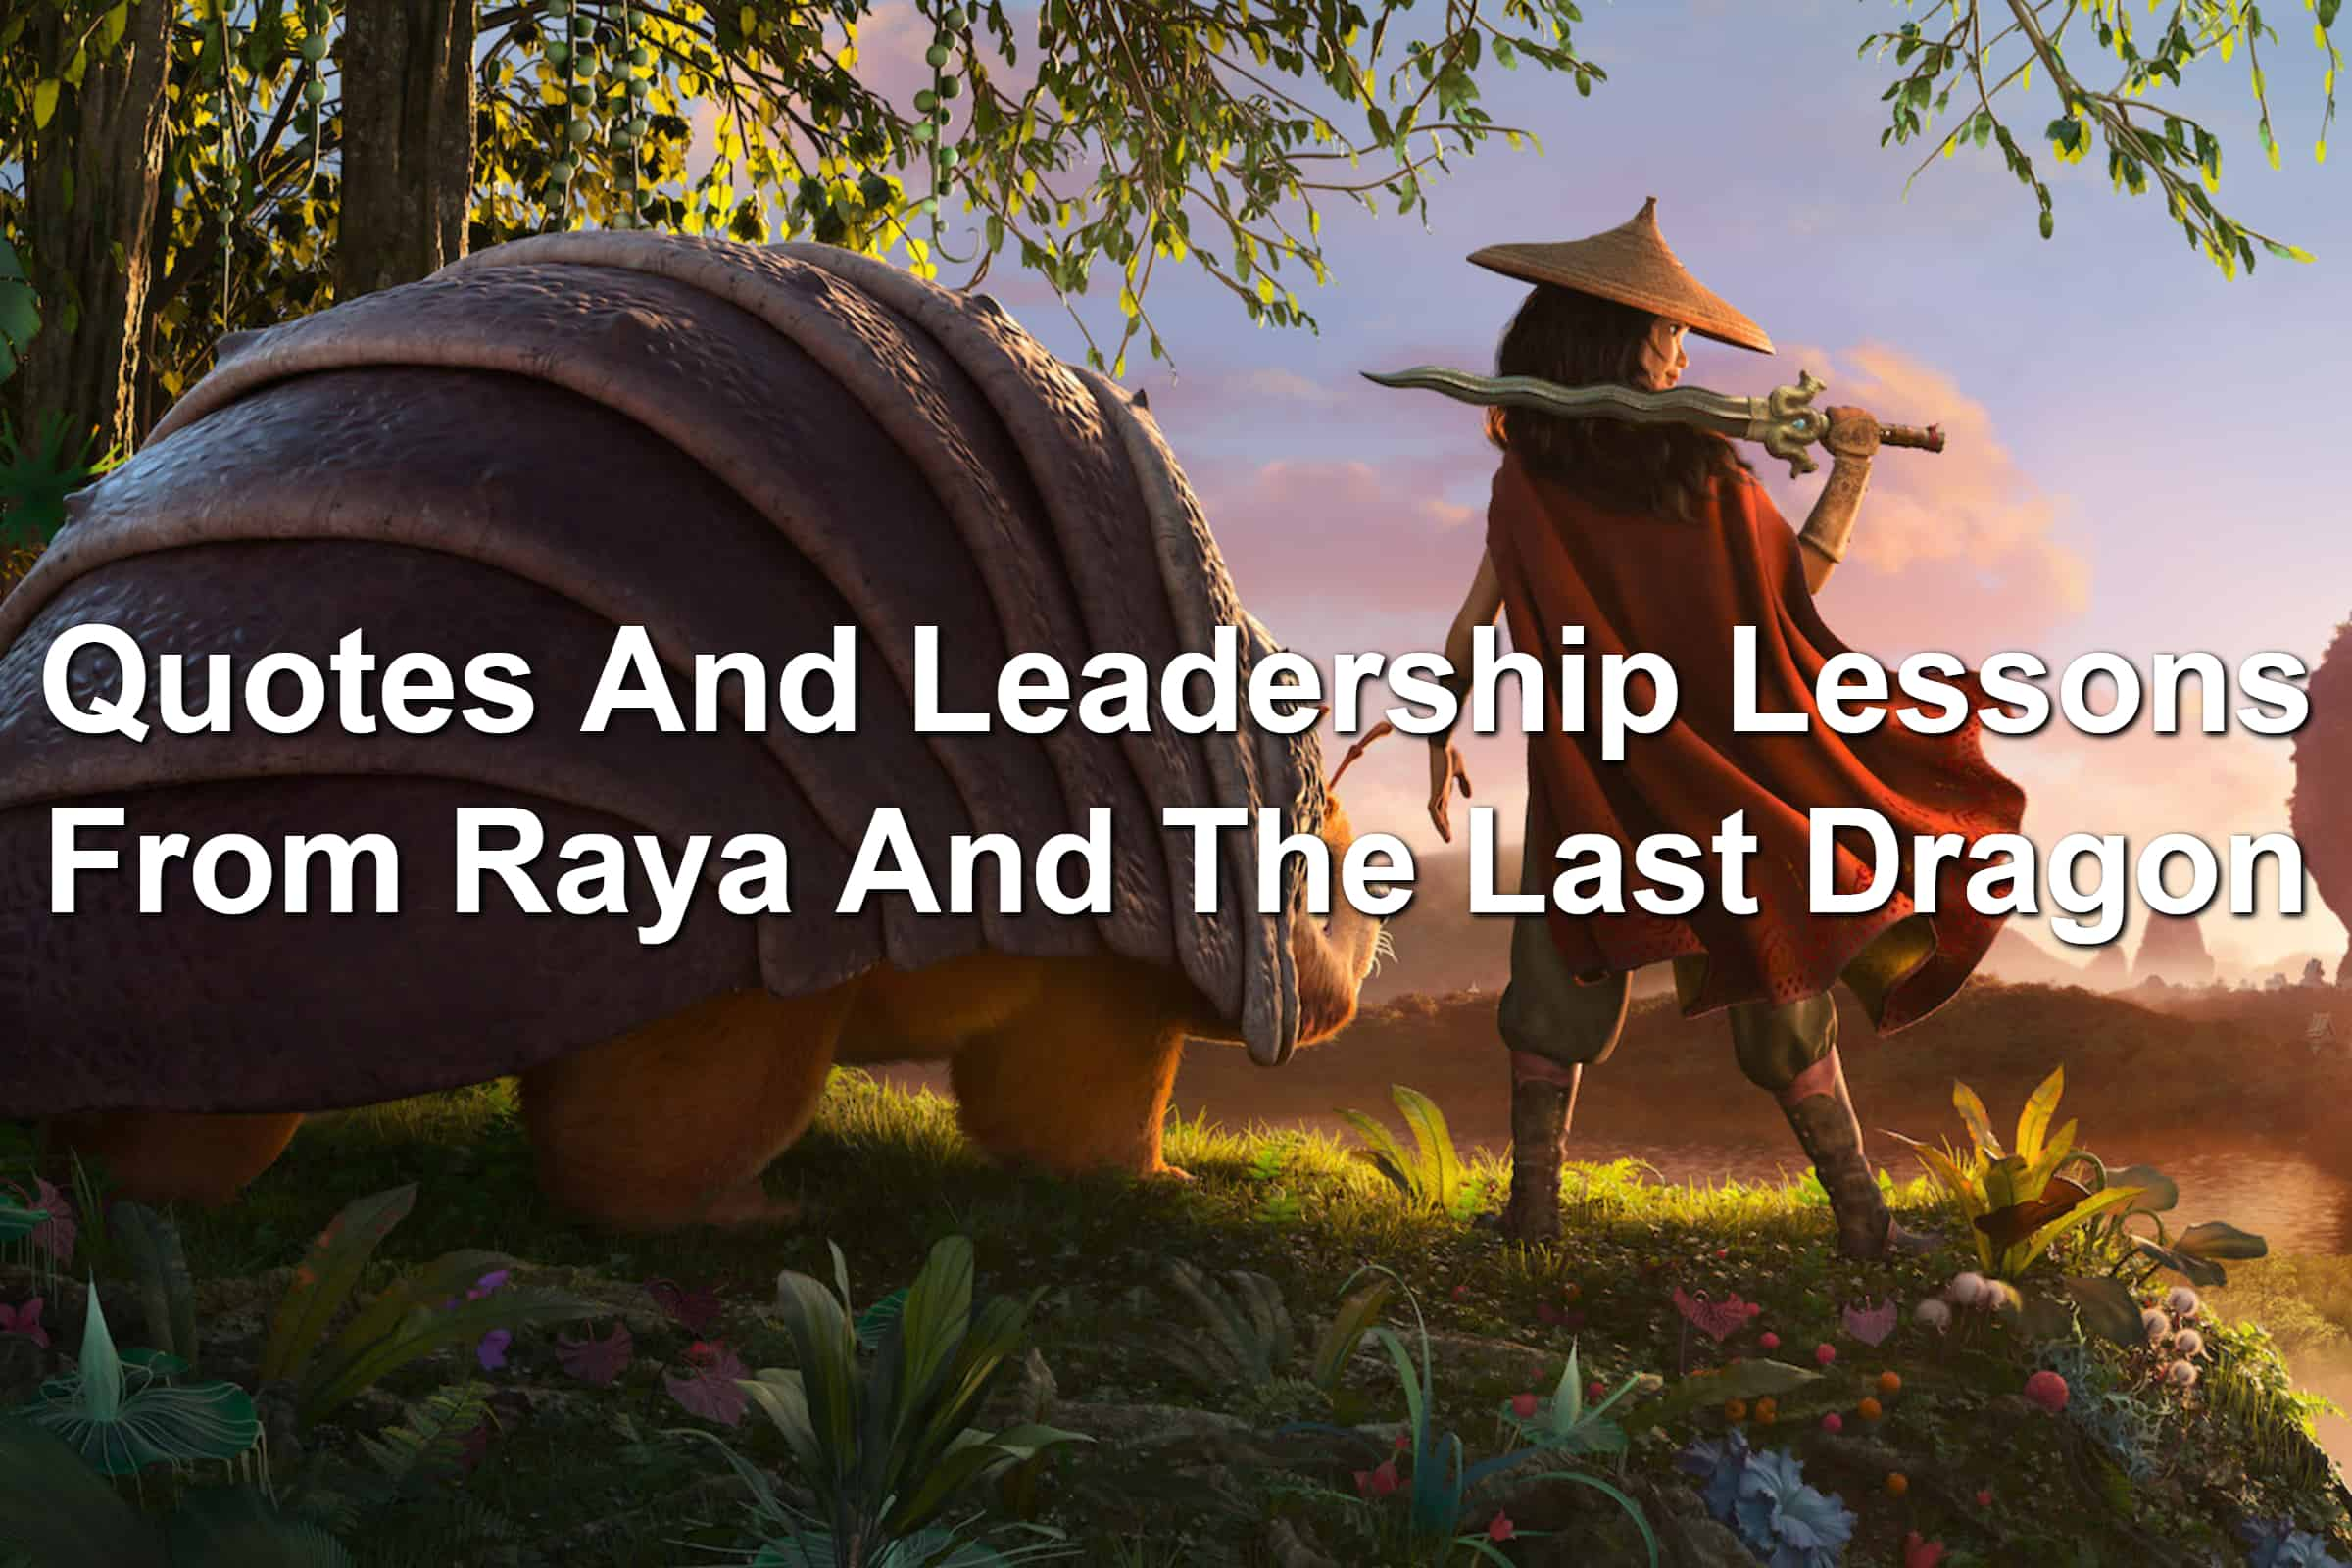 Animated characters Raya and Tuk Tuk in a promotional image for Raya And The Last Dragon